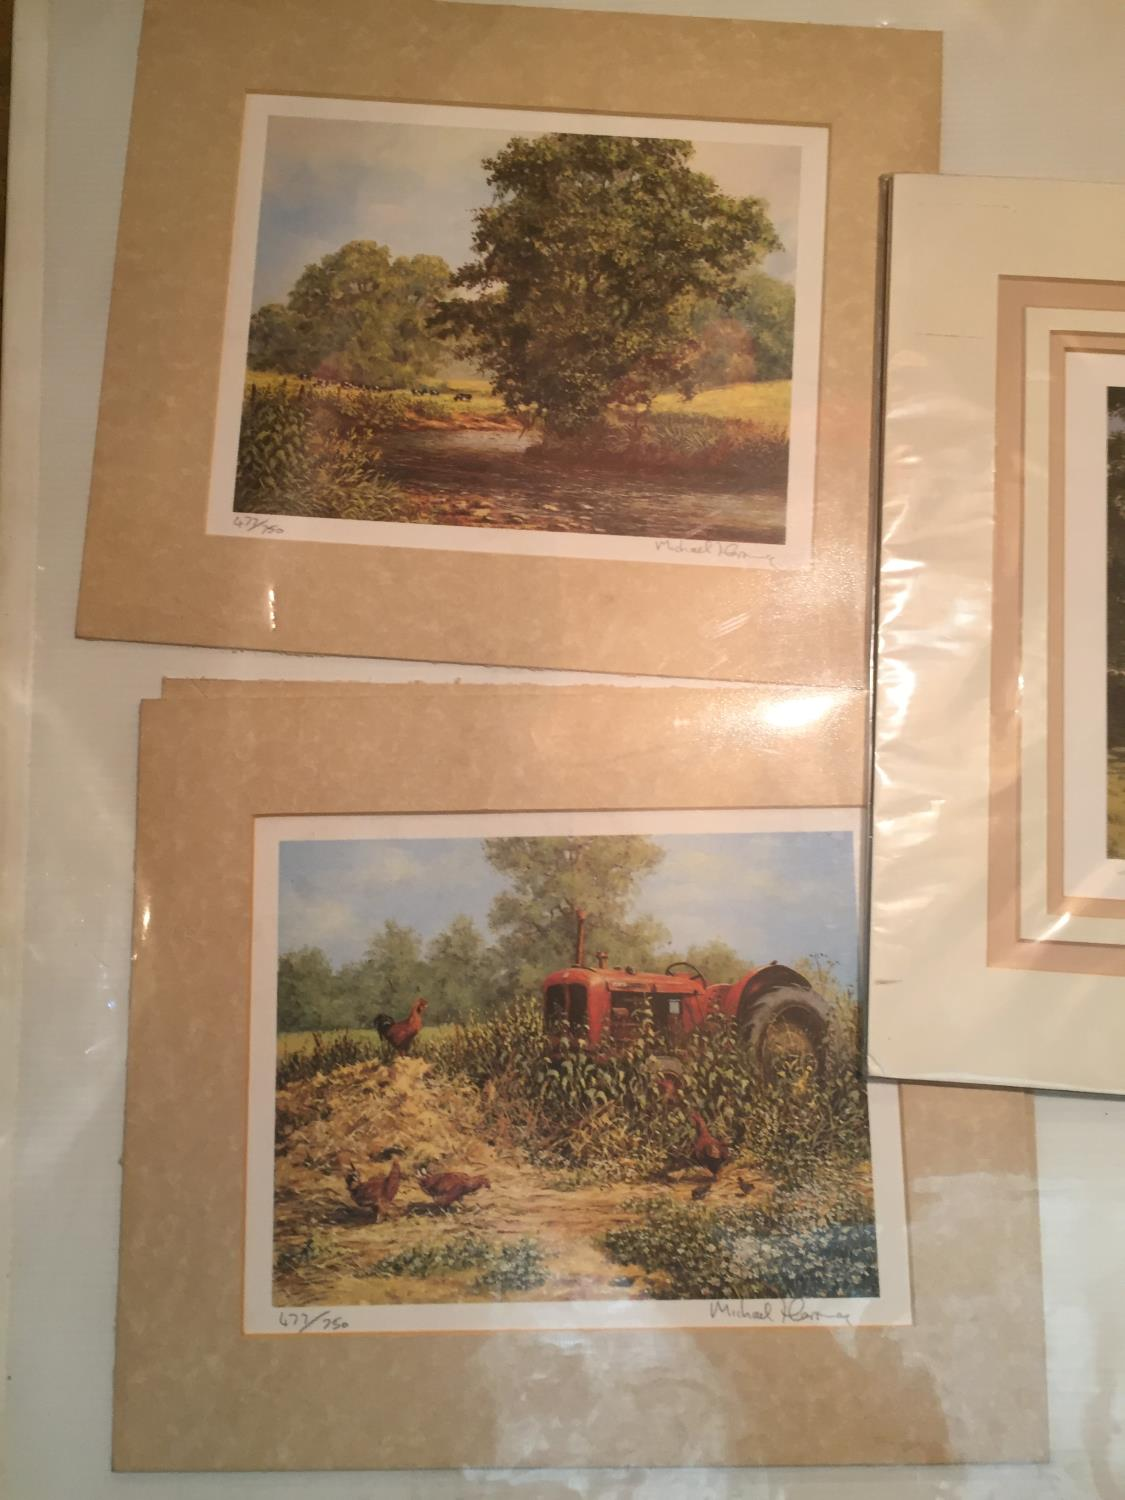 THREE MOUNTED SIGNED PRINTS OF FARM SCENES IN A HARDBACK PROTECTIVE FOLDER - Image 5 of 12